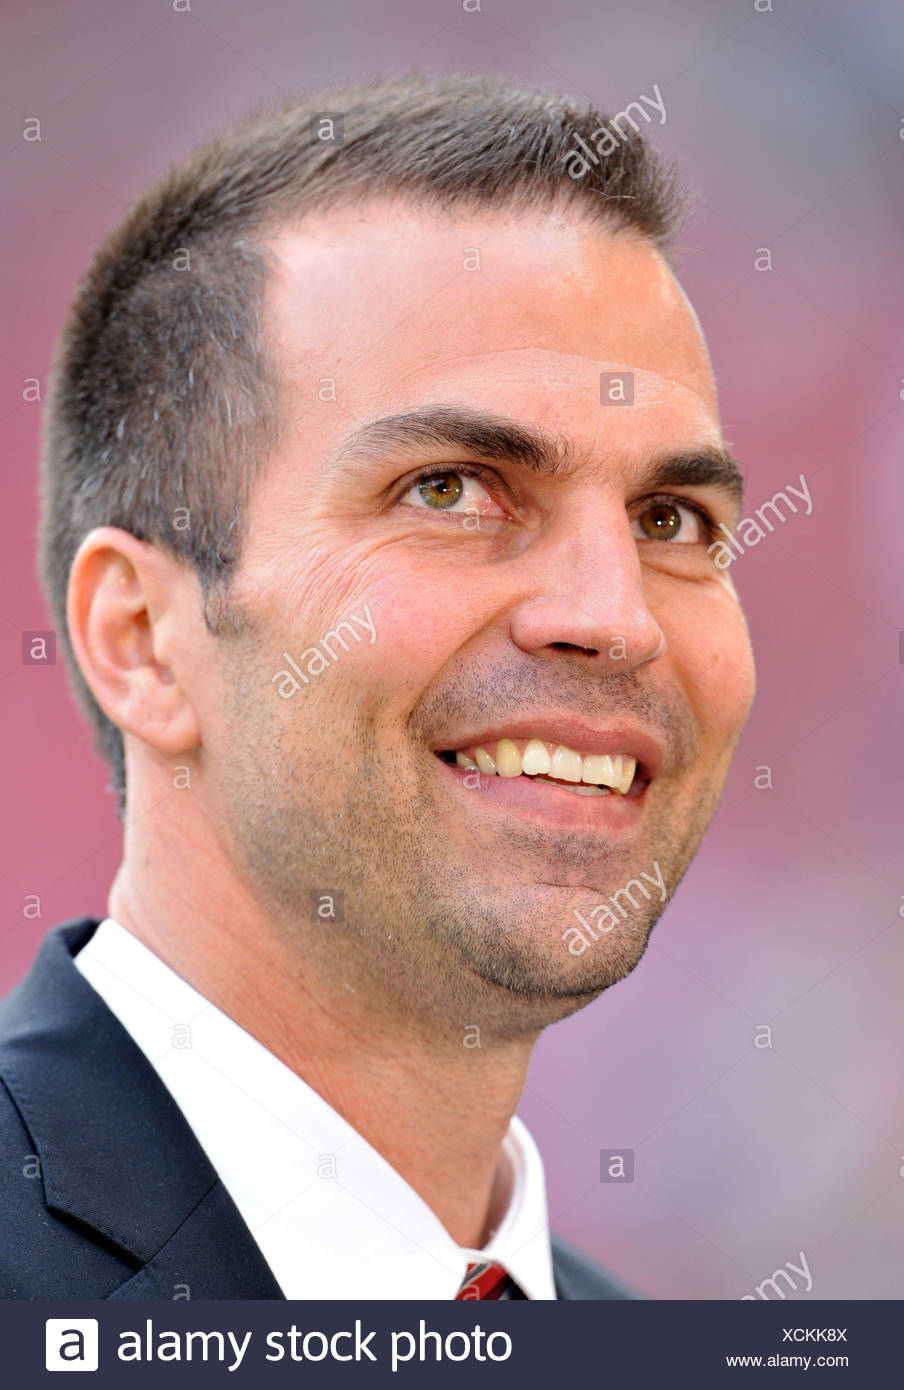 Markus Babbel, manager and coach of VfB Stuttgart, looking friendly Stock Photo